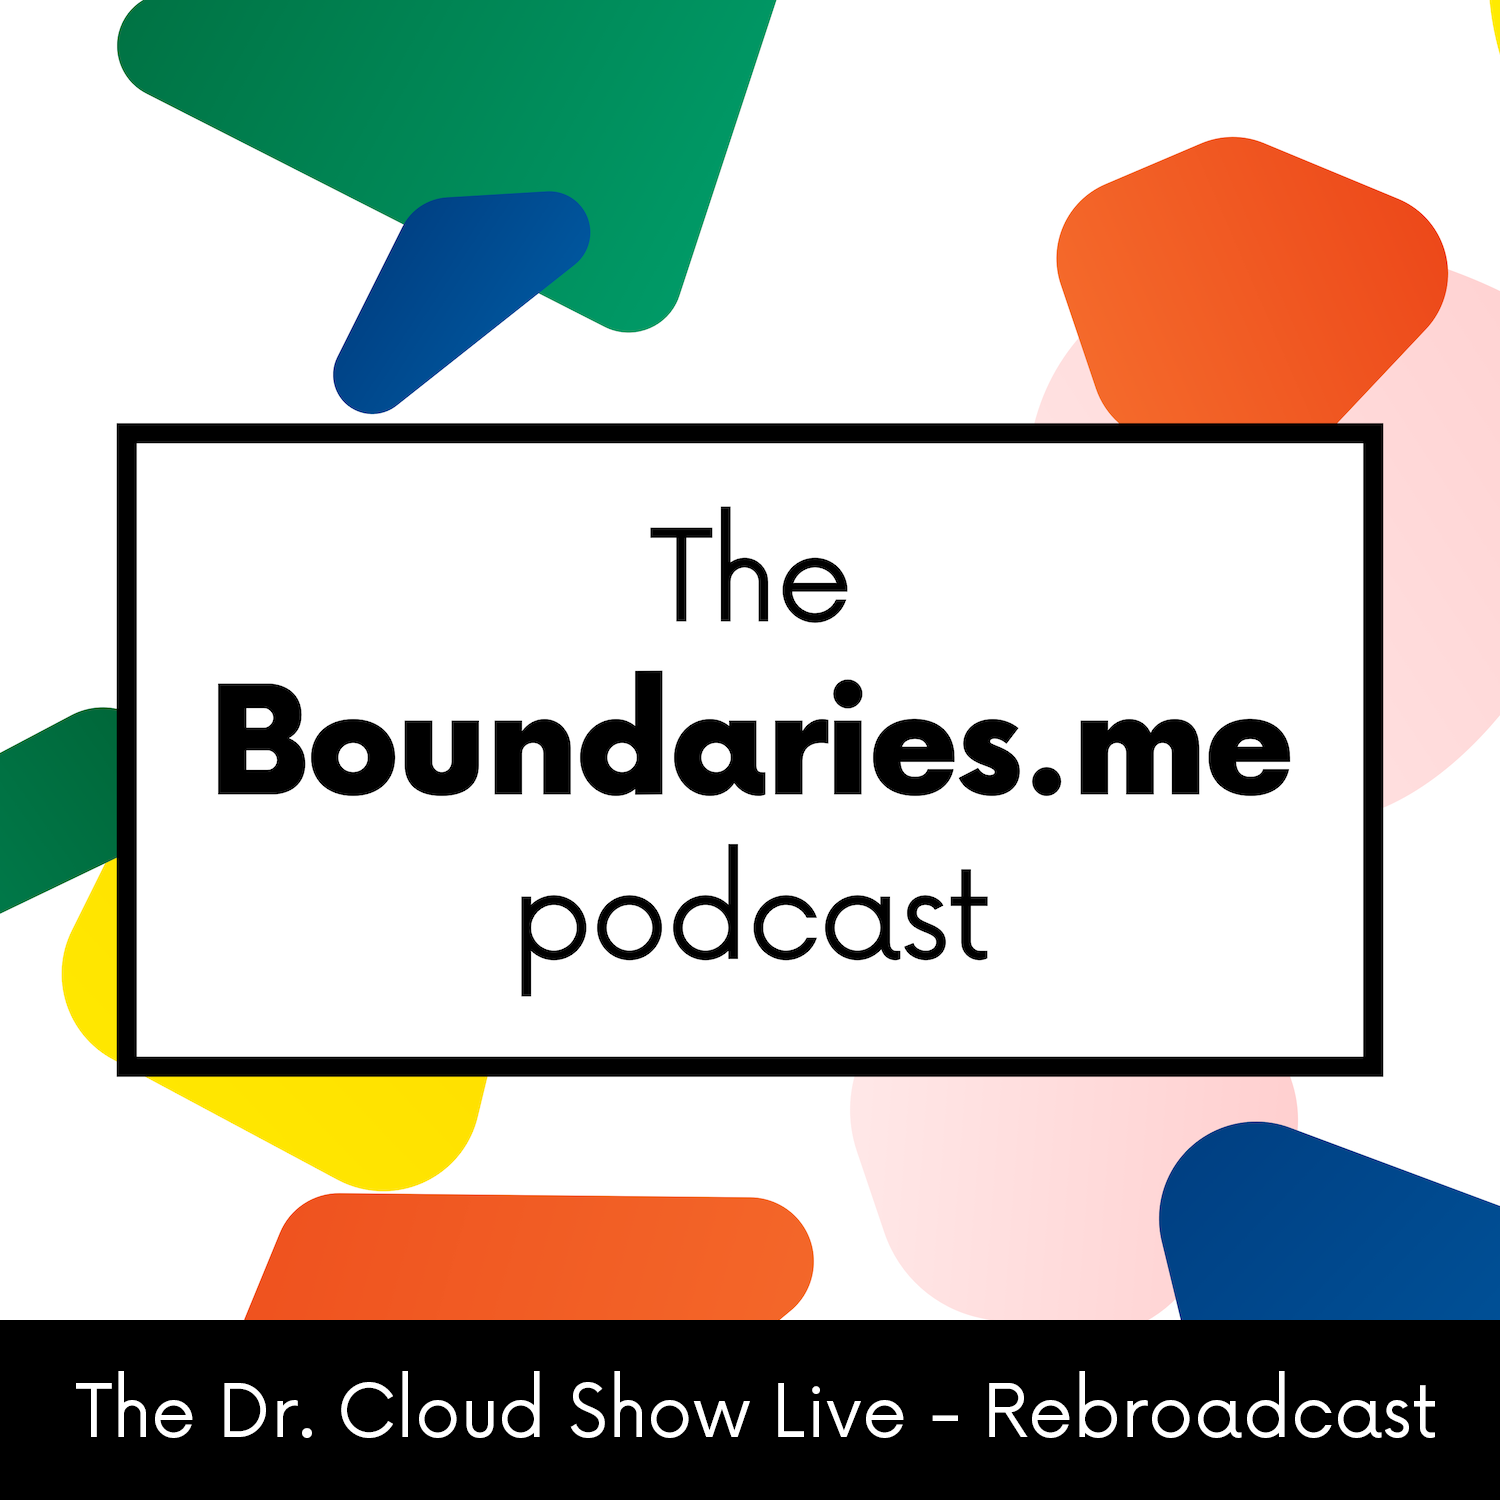 Episode 19 - The Dr. Cloud Show Live - Love = Freedom = Responsibility